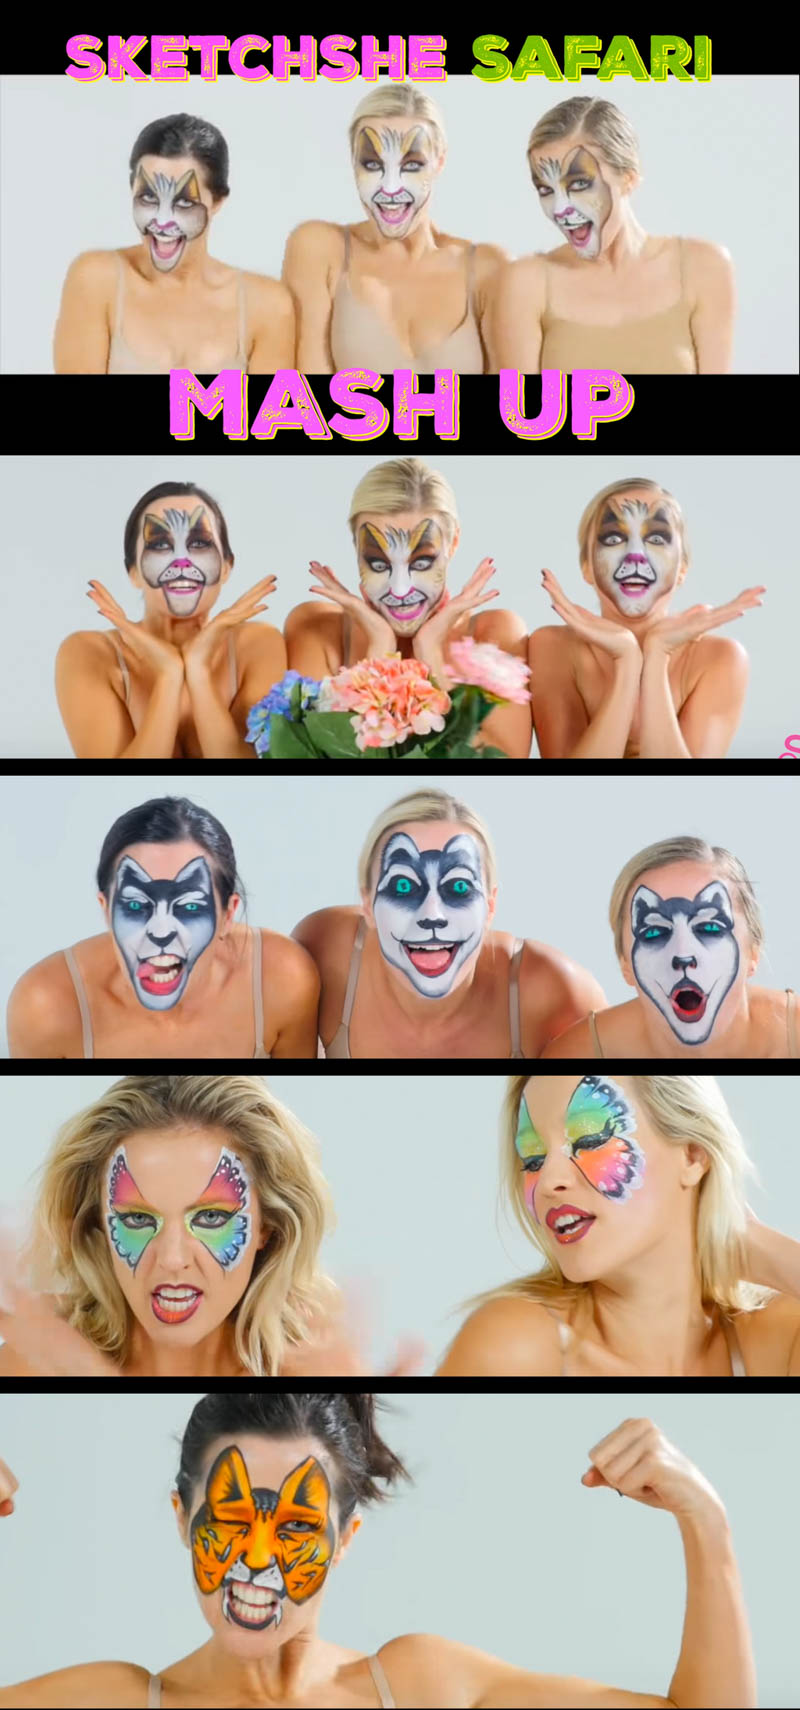 Face Body Painting SketchShe Safari Animal Mashup